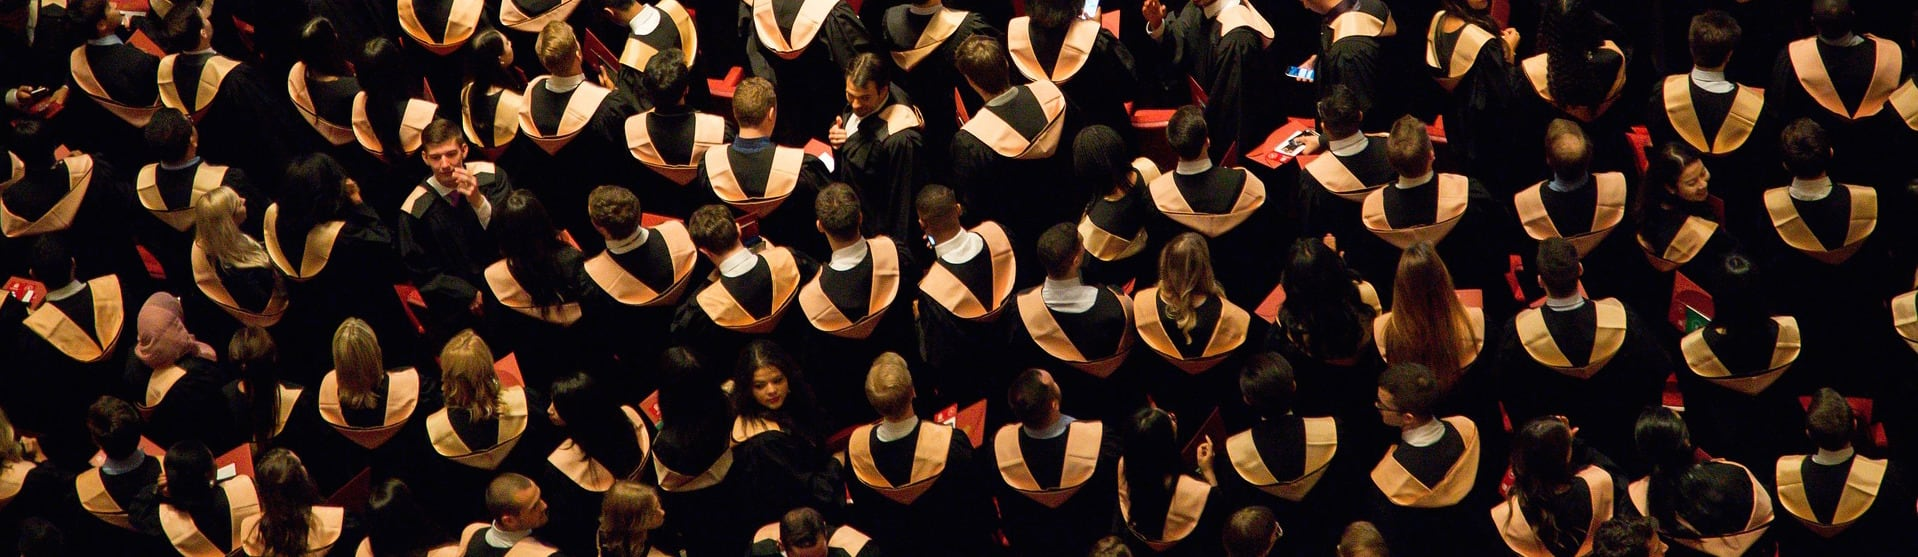 Aerial view of college graduates dressed in black robes and caps.